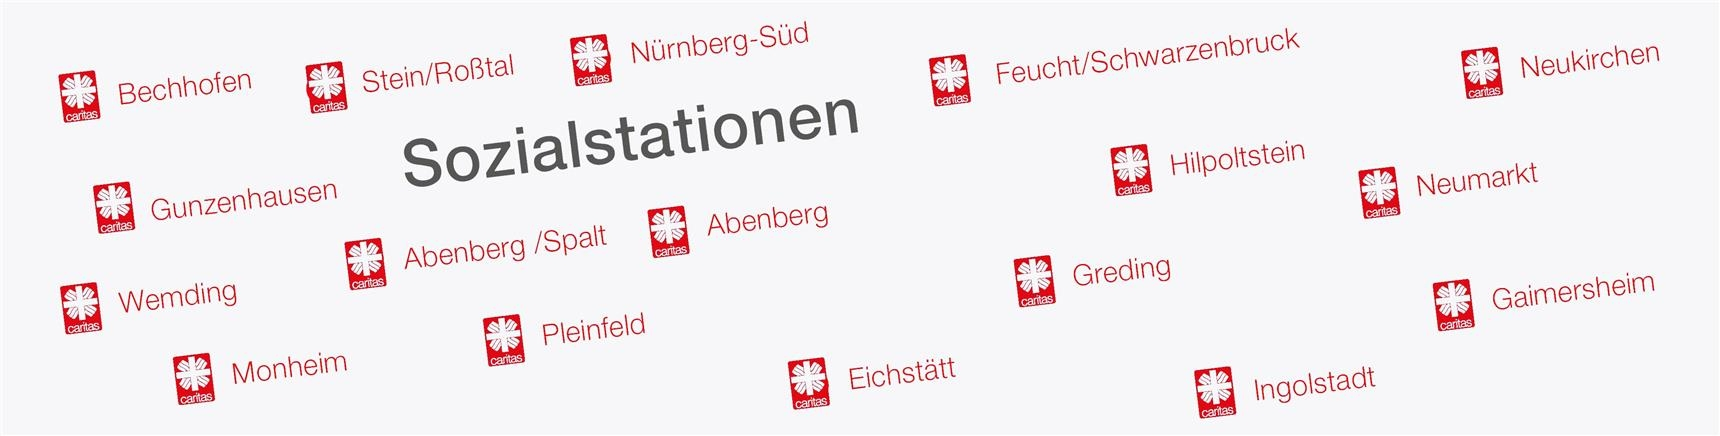 Header - 005 - Header Sozialstationen2